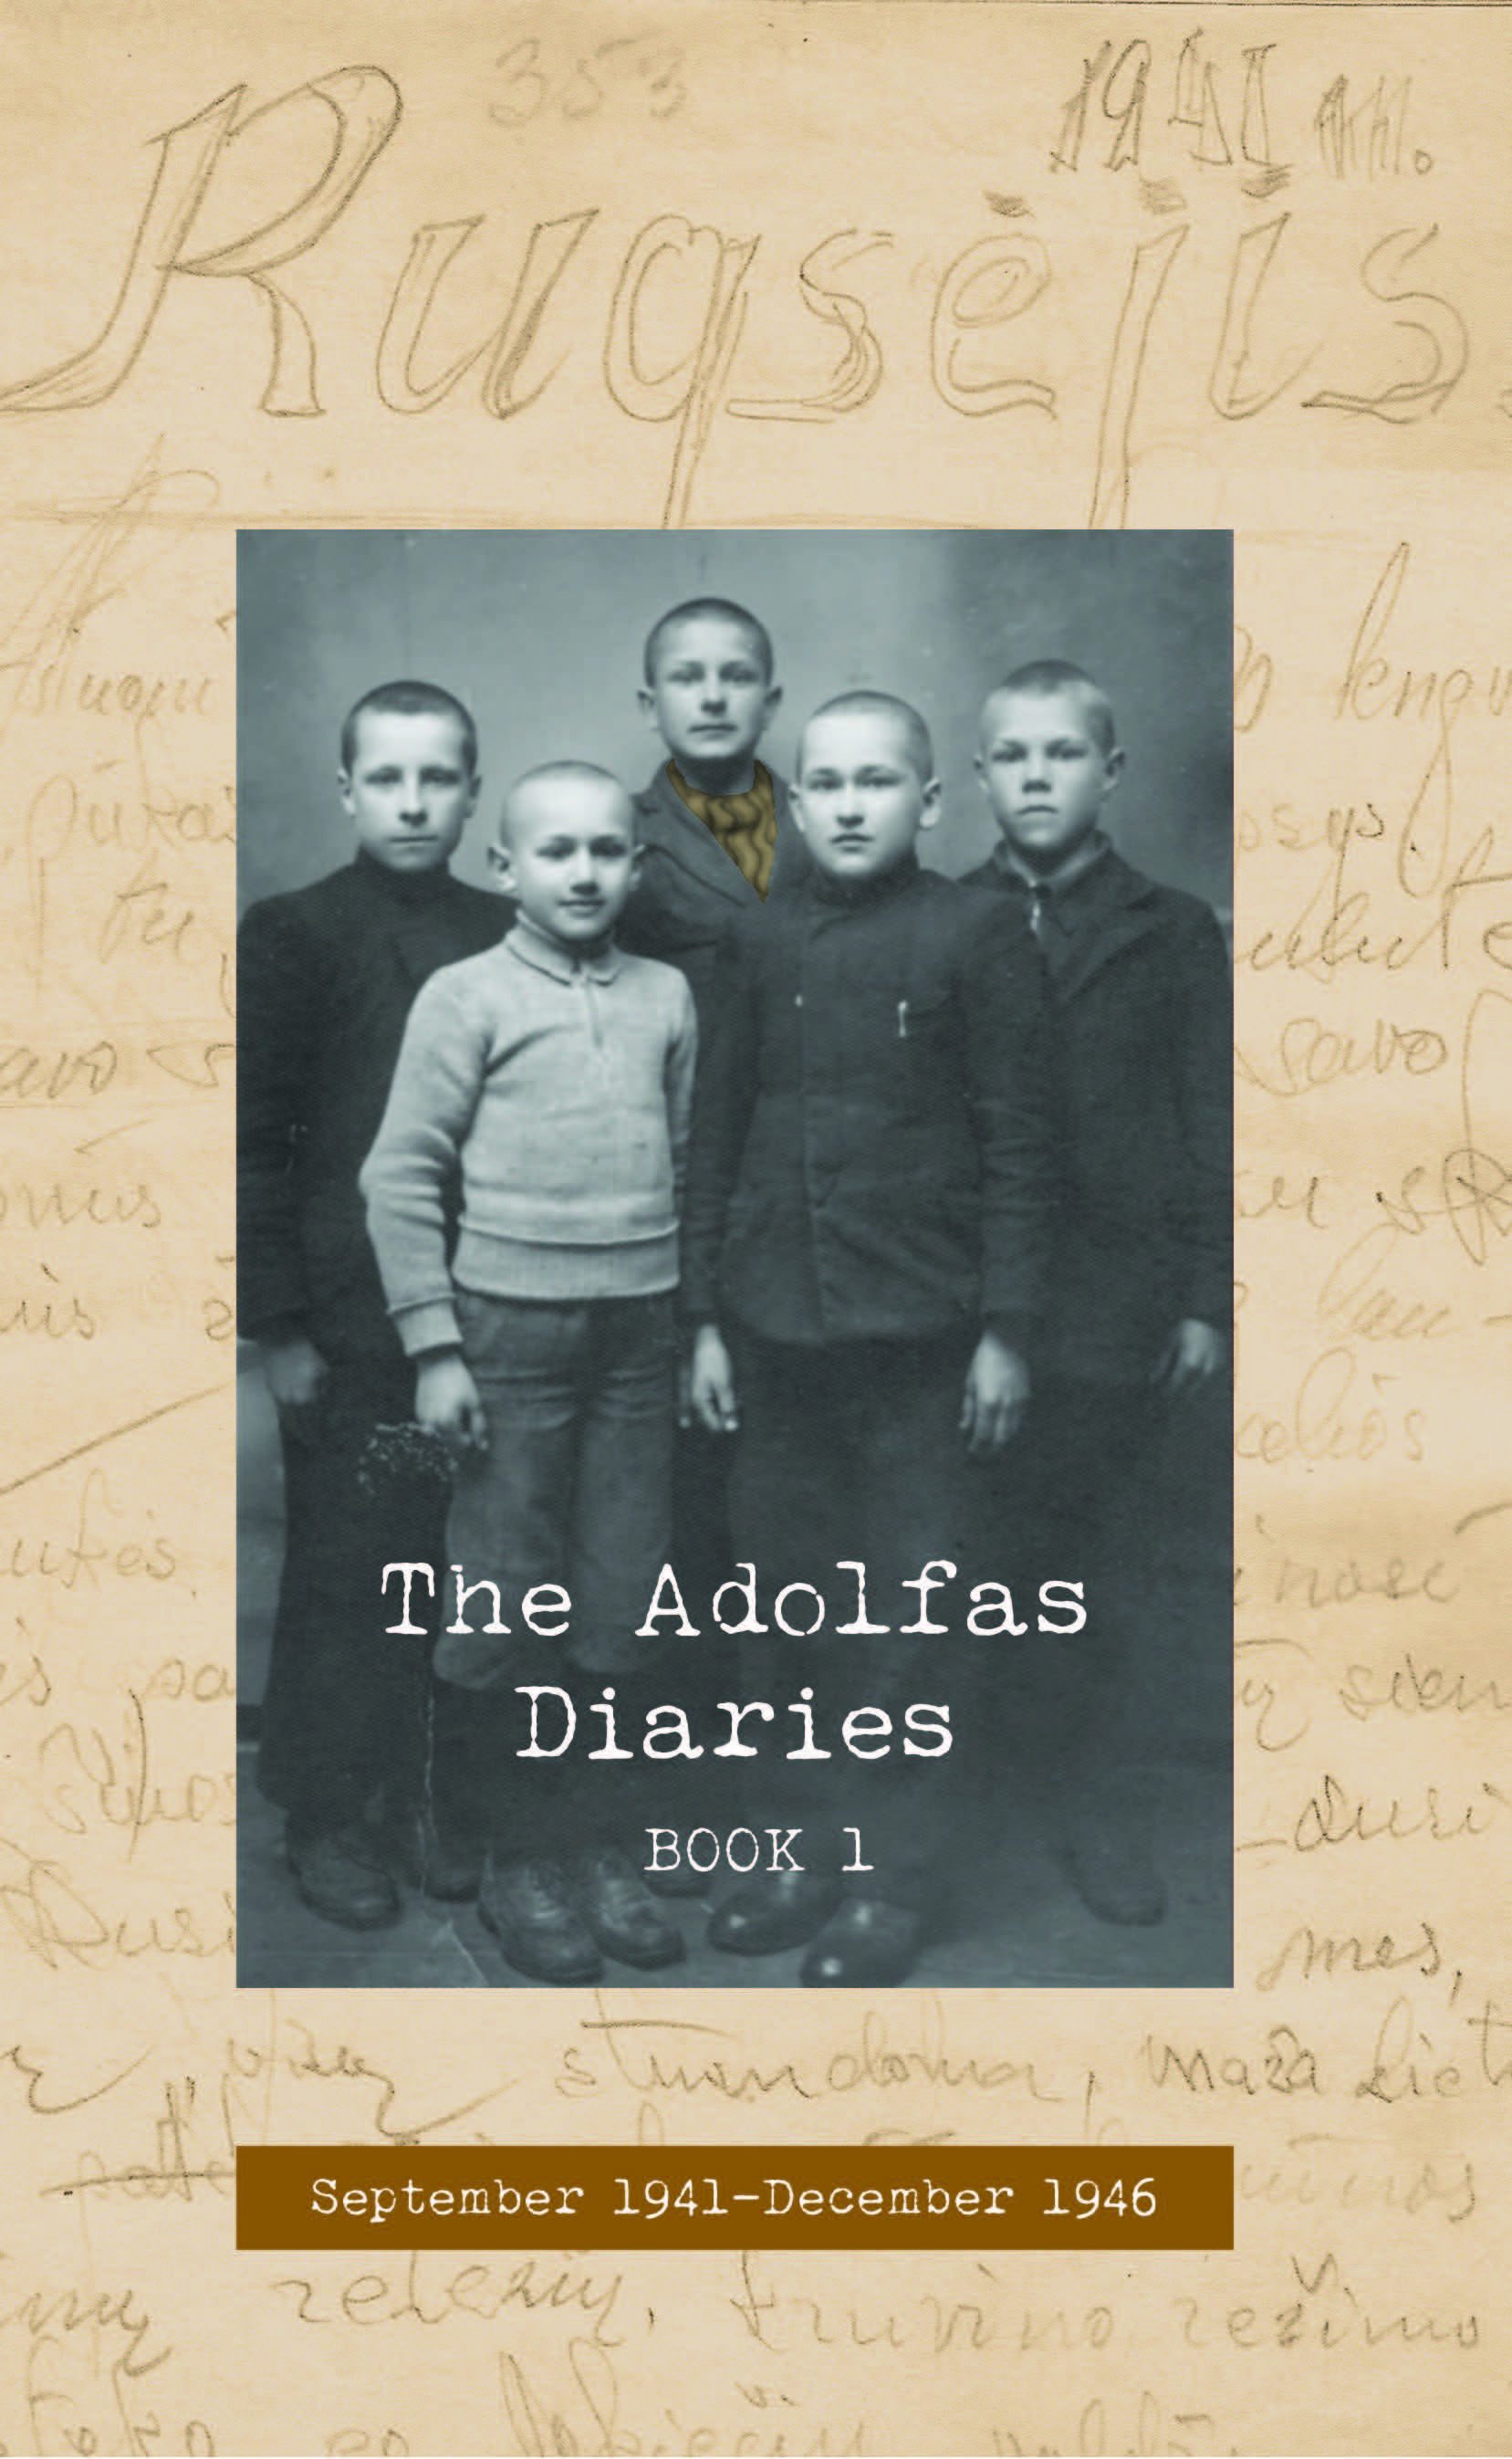 The Adolfas Diaries